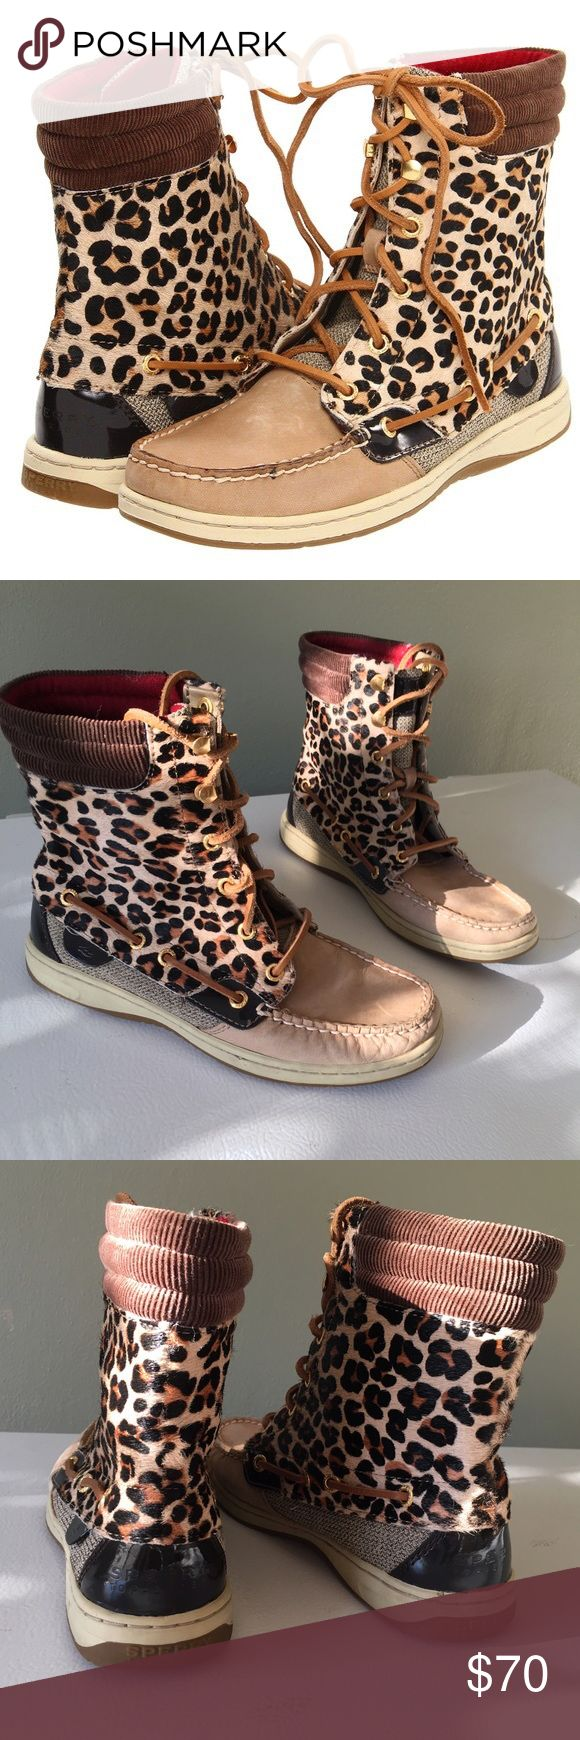 """Sperry Top-Sider Hikerfish Boots in Leopard Adorable high tops / boots / boat shoes from Sperry! Water and stain resistant. Leather. Gold hardware. About 7"""" tall. You can also roll them down for a different look! Red on the inside. Only worn a handful of times and still in great condition  Sperry Shoes Ankle Boots & Booties"""